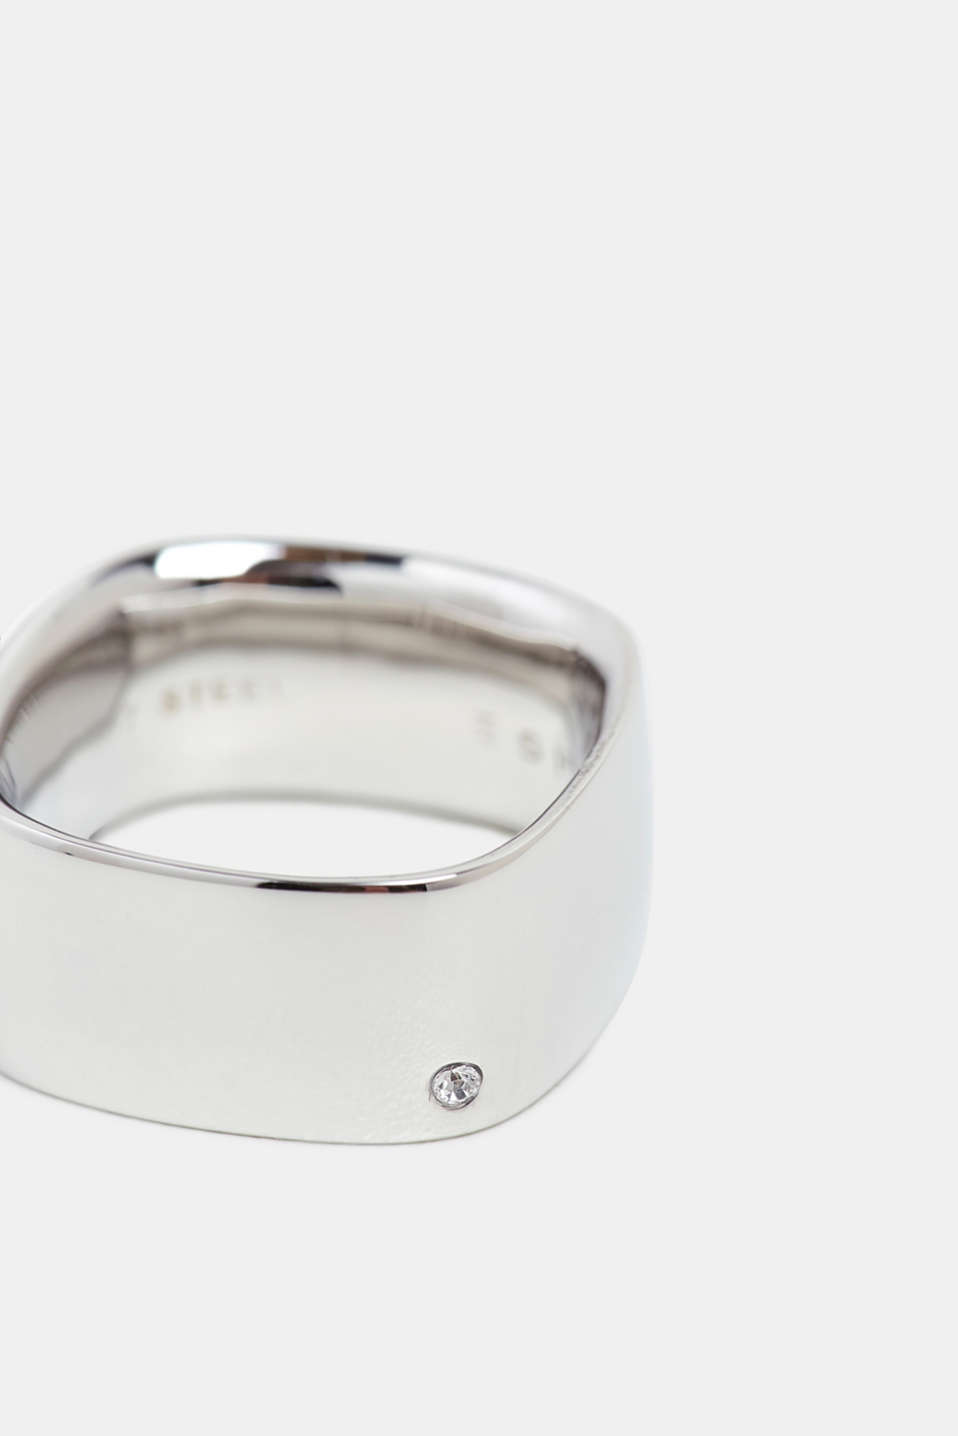 Wide ring with a zirconia trim, stainless steel, 1COLOR, detail image number 1